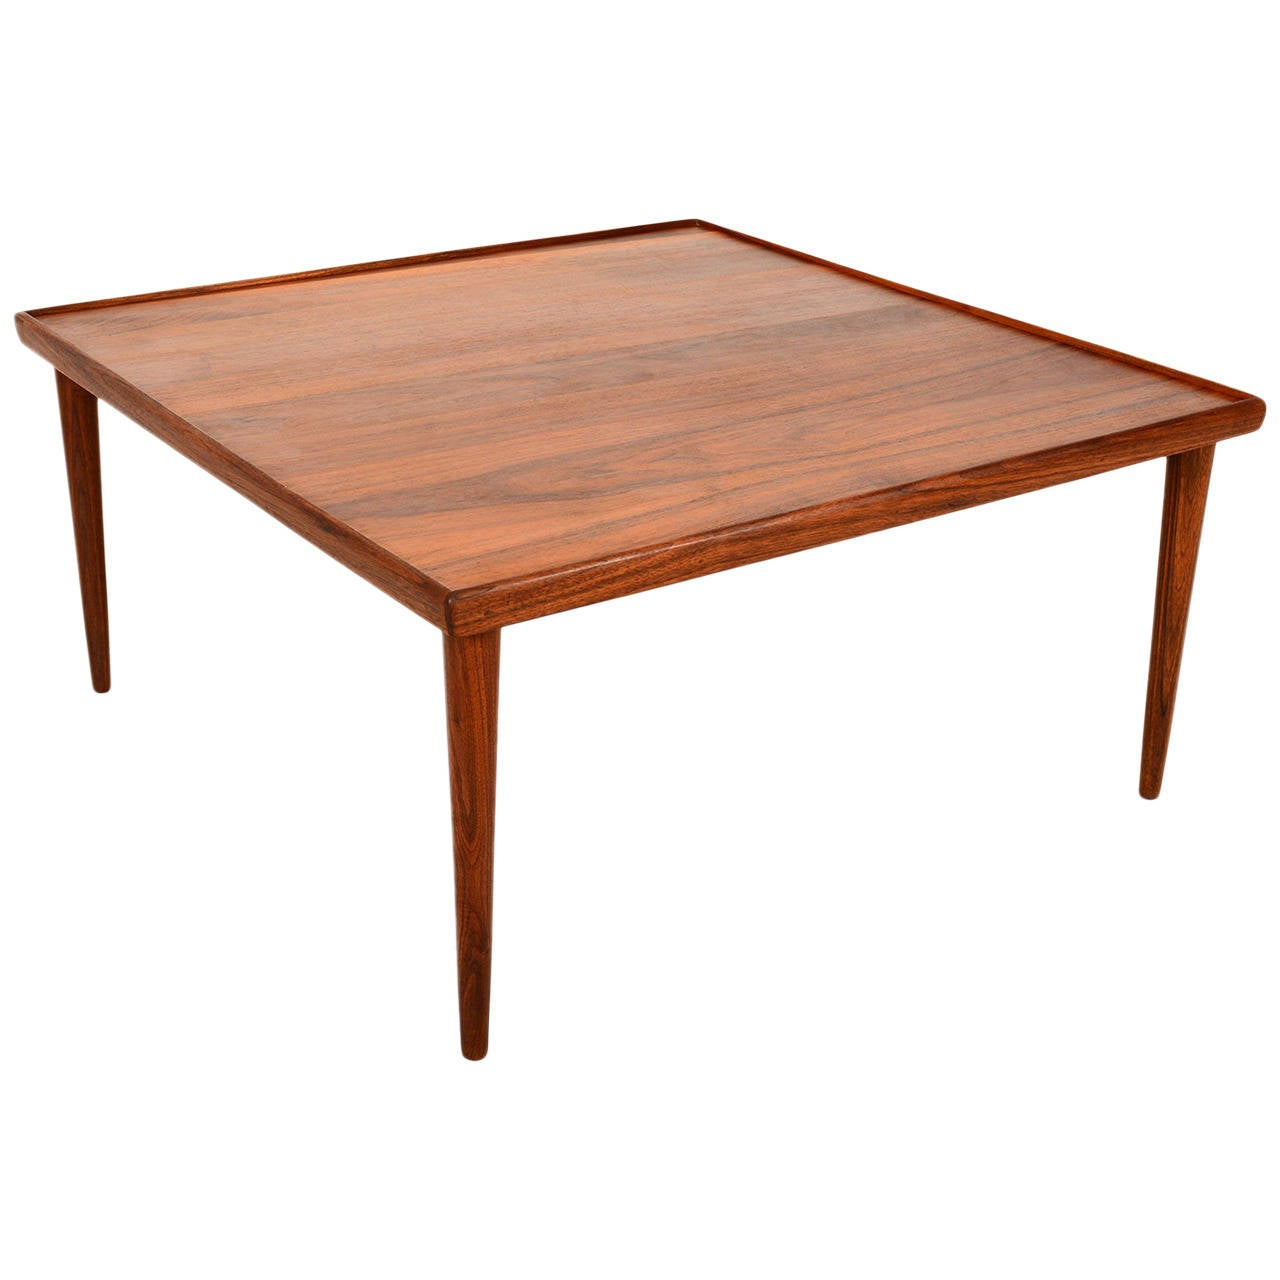 Teak square coffee table danish modern at 1stdibs Modern teak coffee table